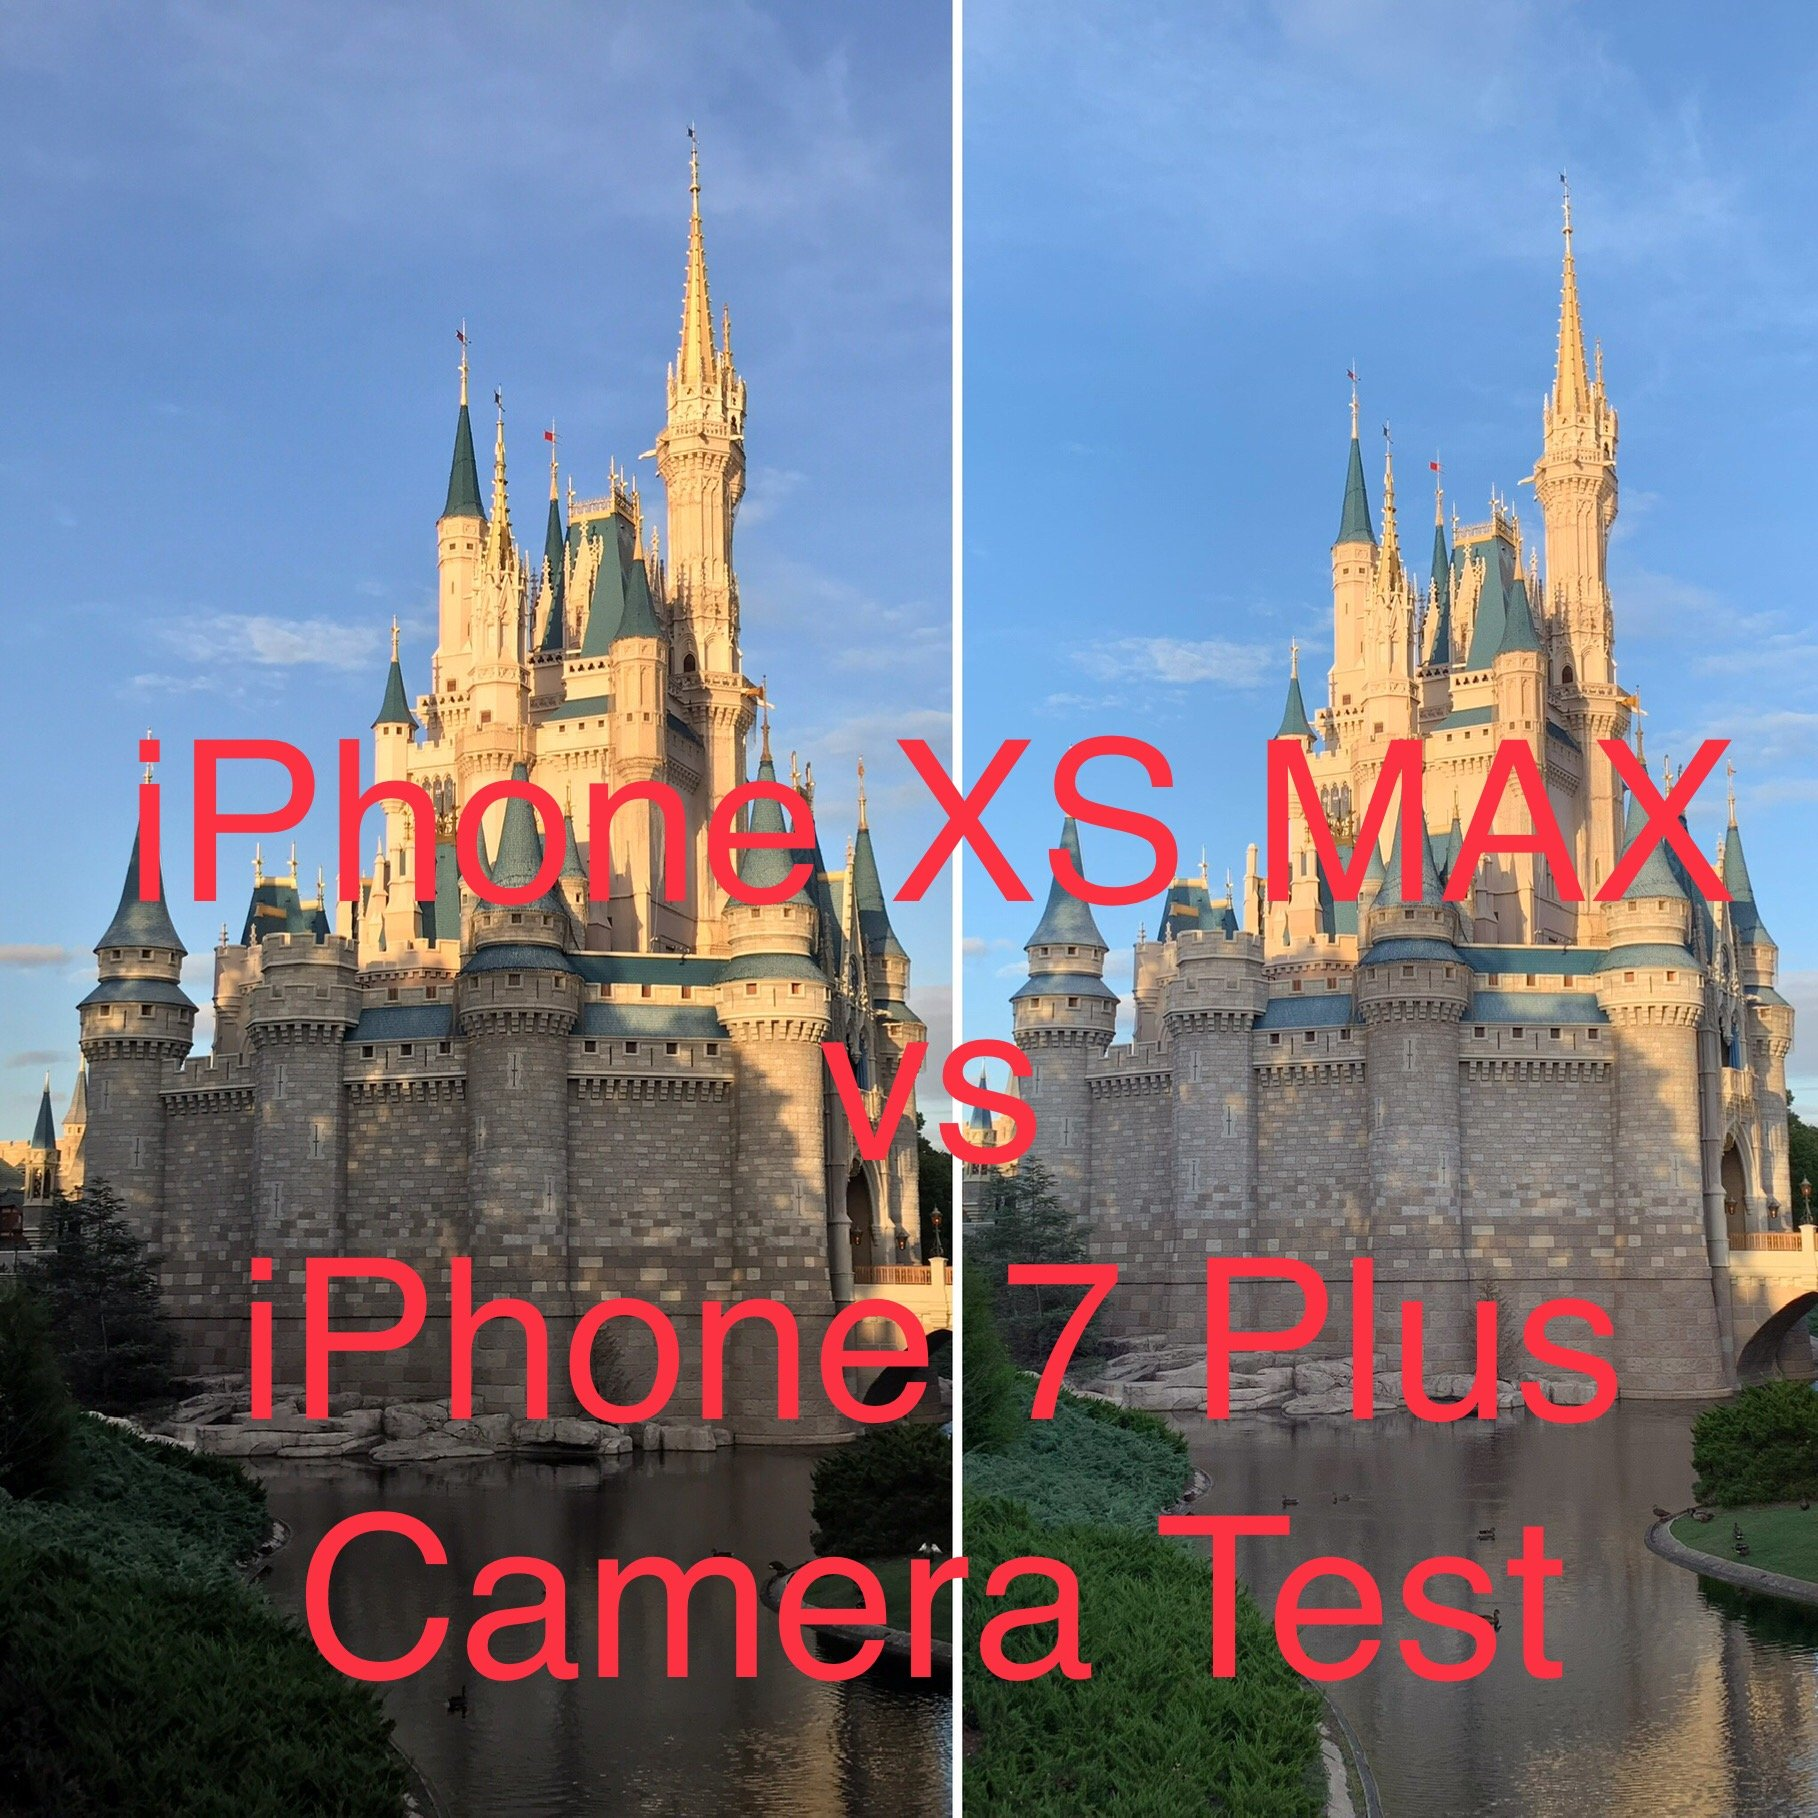 Wdw Photos Iphone 7 Plus Vs Iphone Xs Max Laughingplace Com